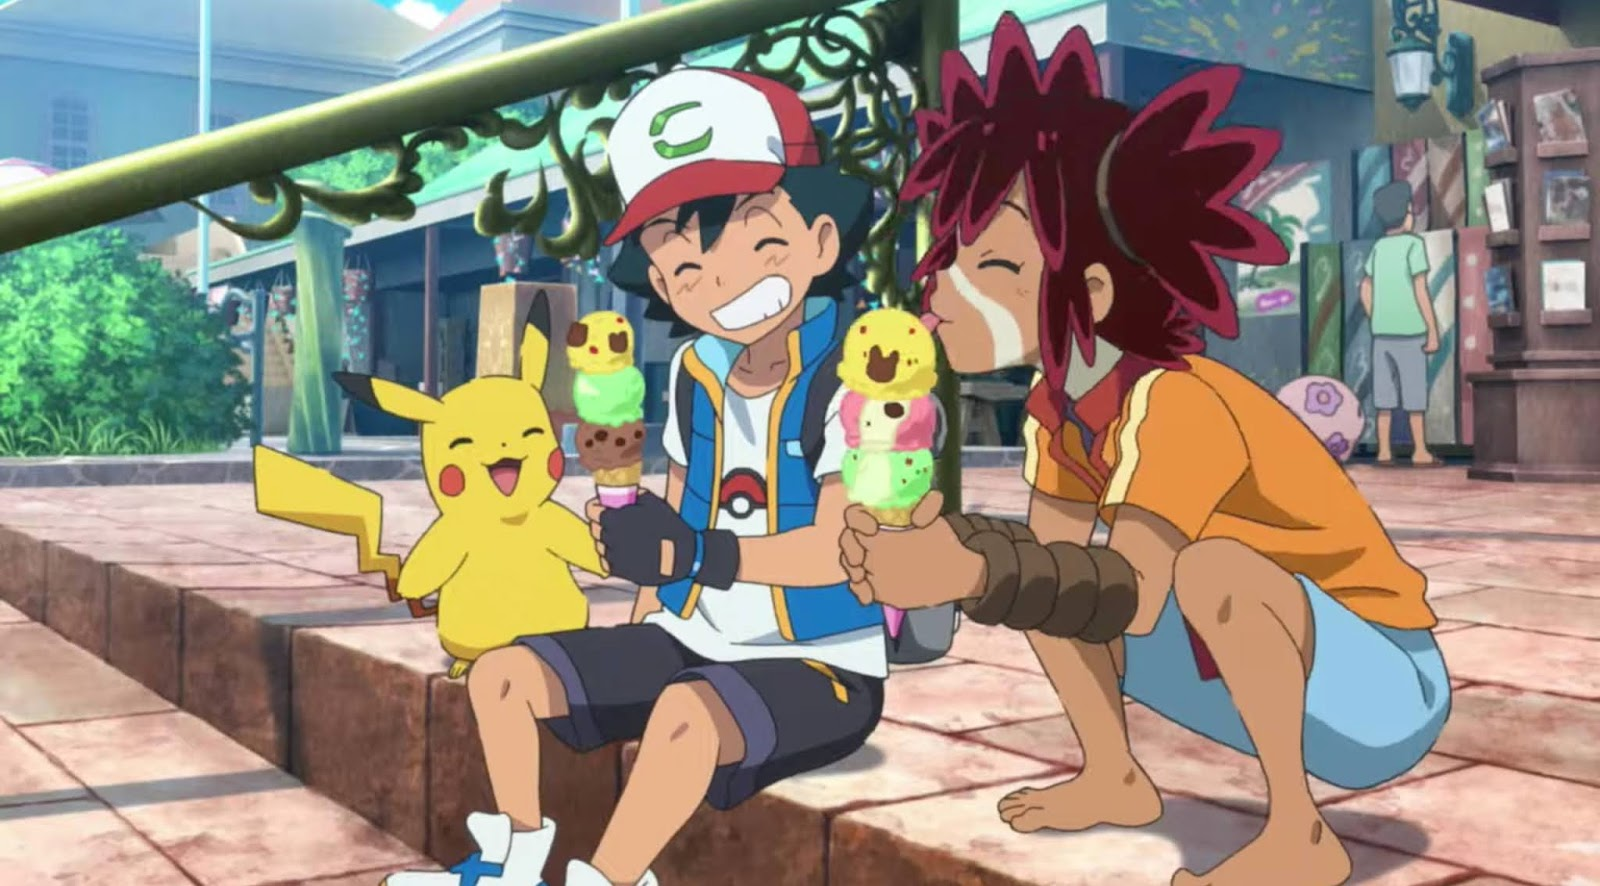 Ash, Pikachu, and Coco